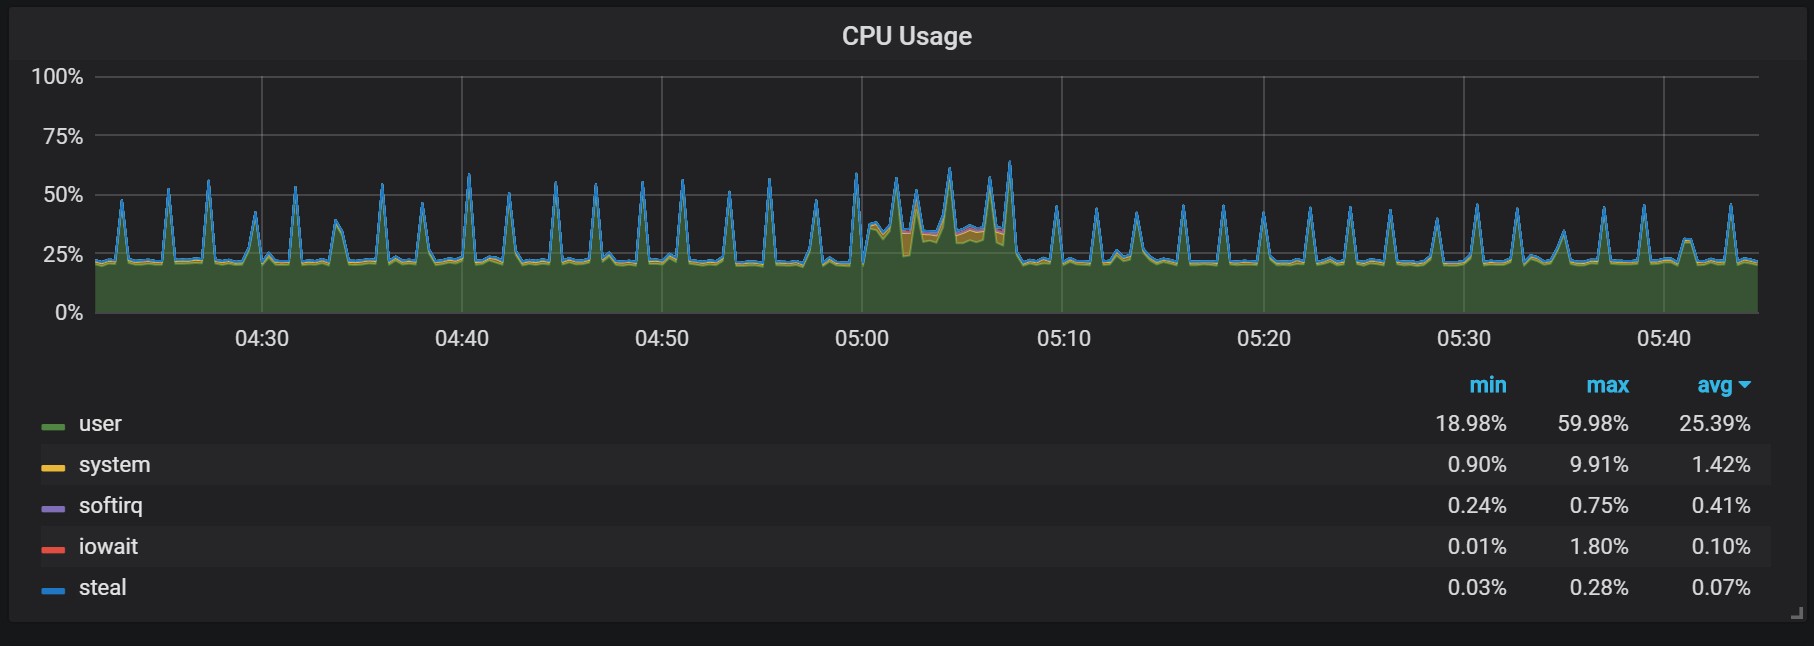 spike in CPU usage during compactions